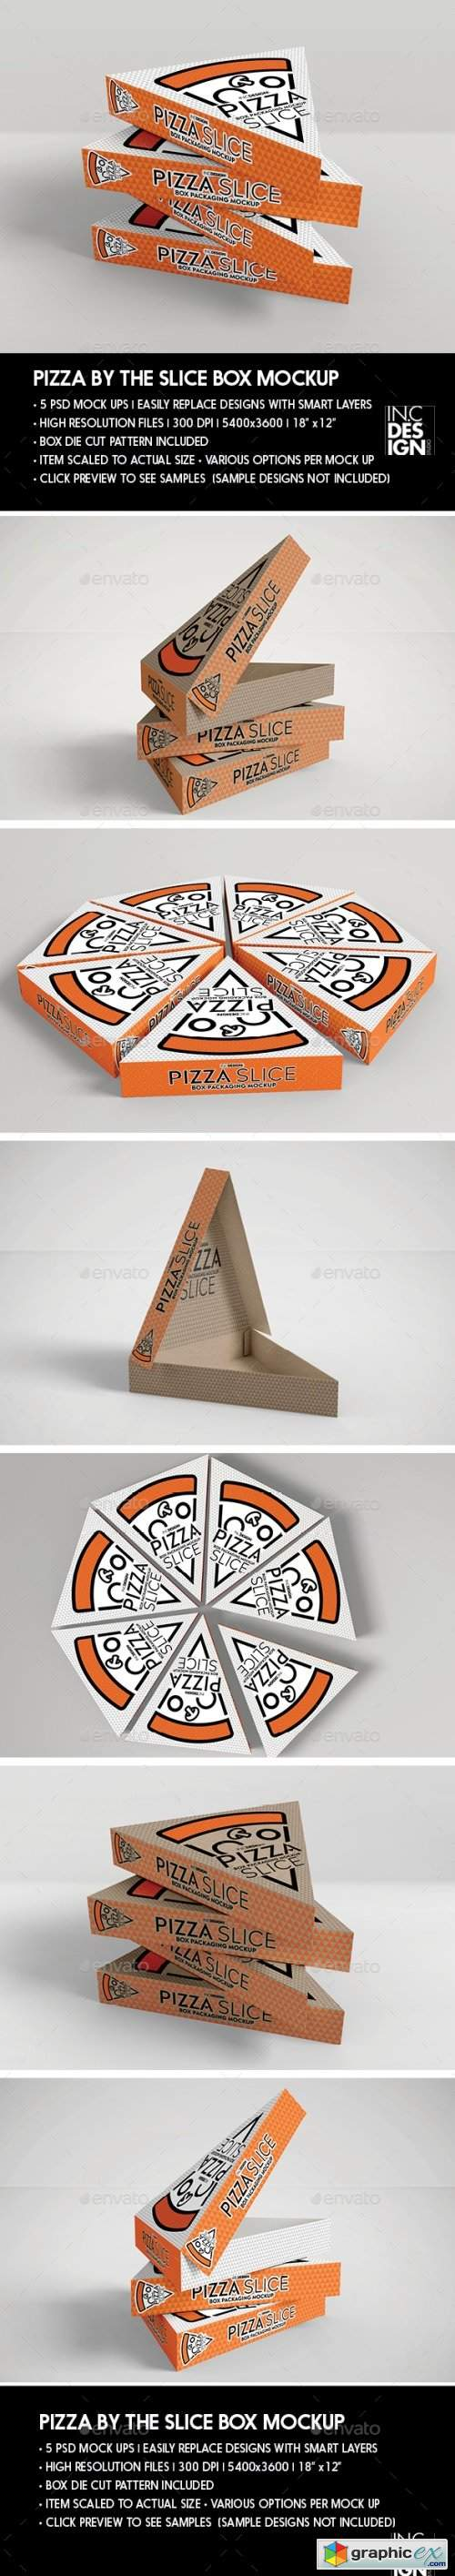 Packaging Mockup Pizza Slice Box